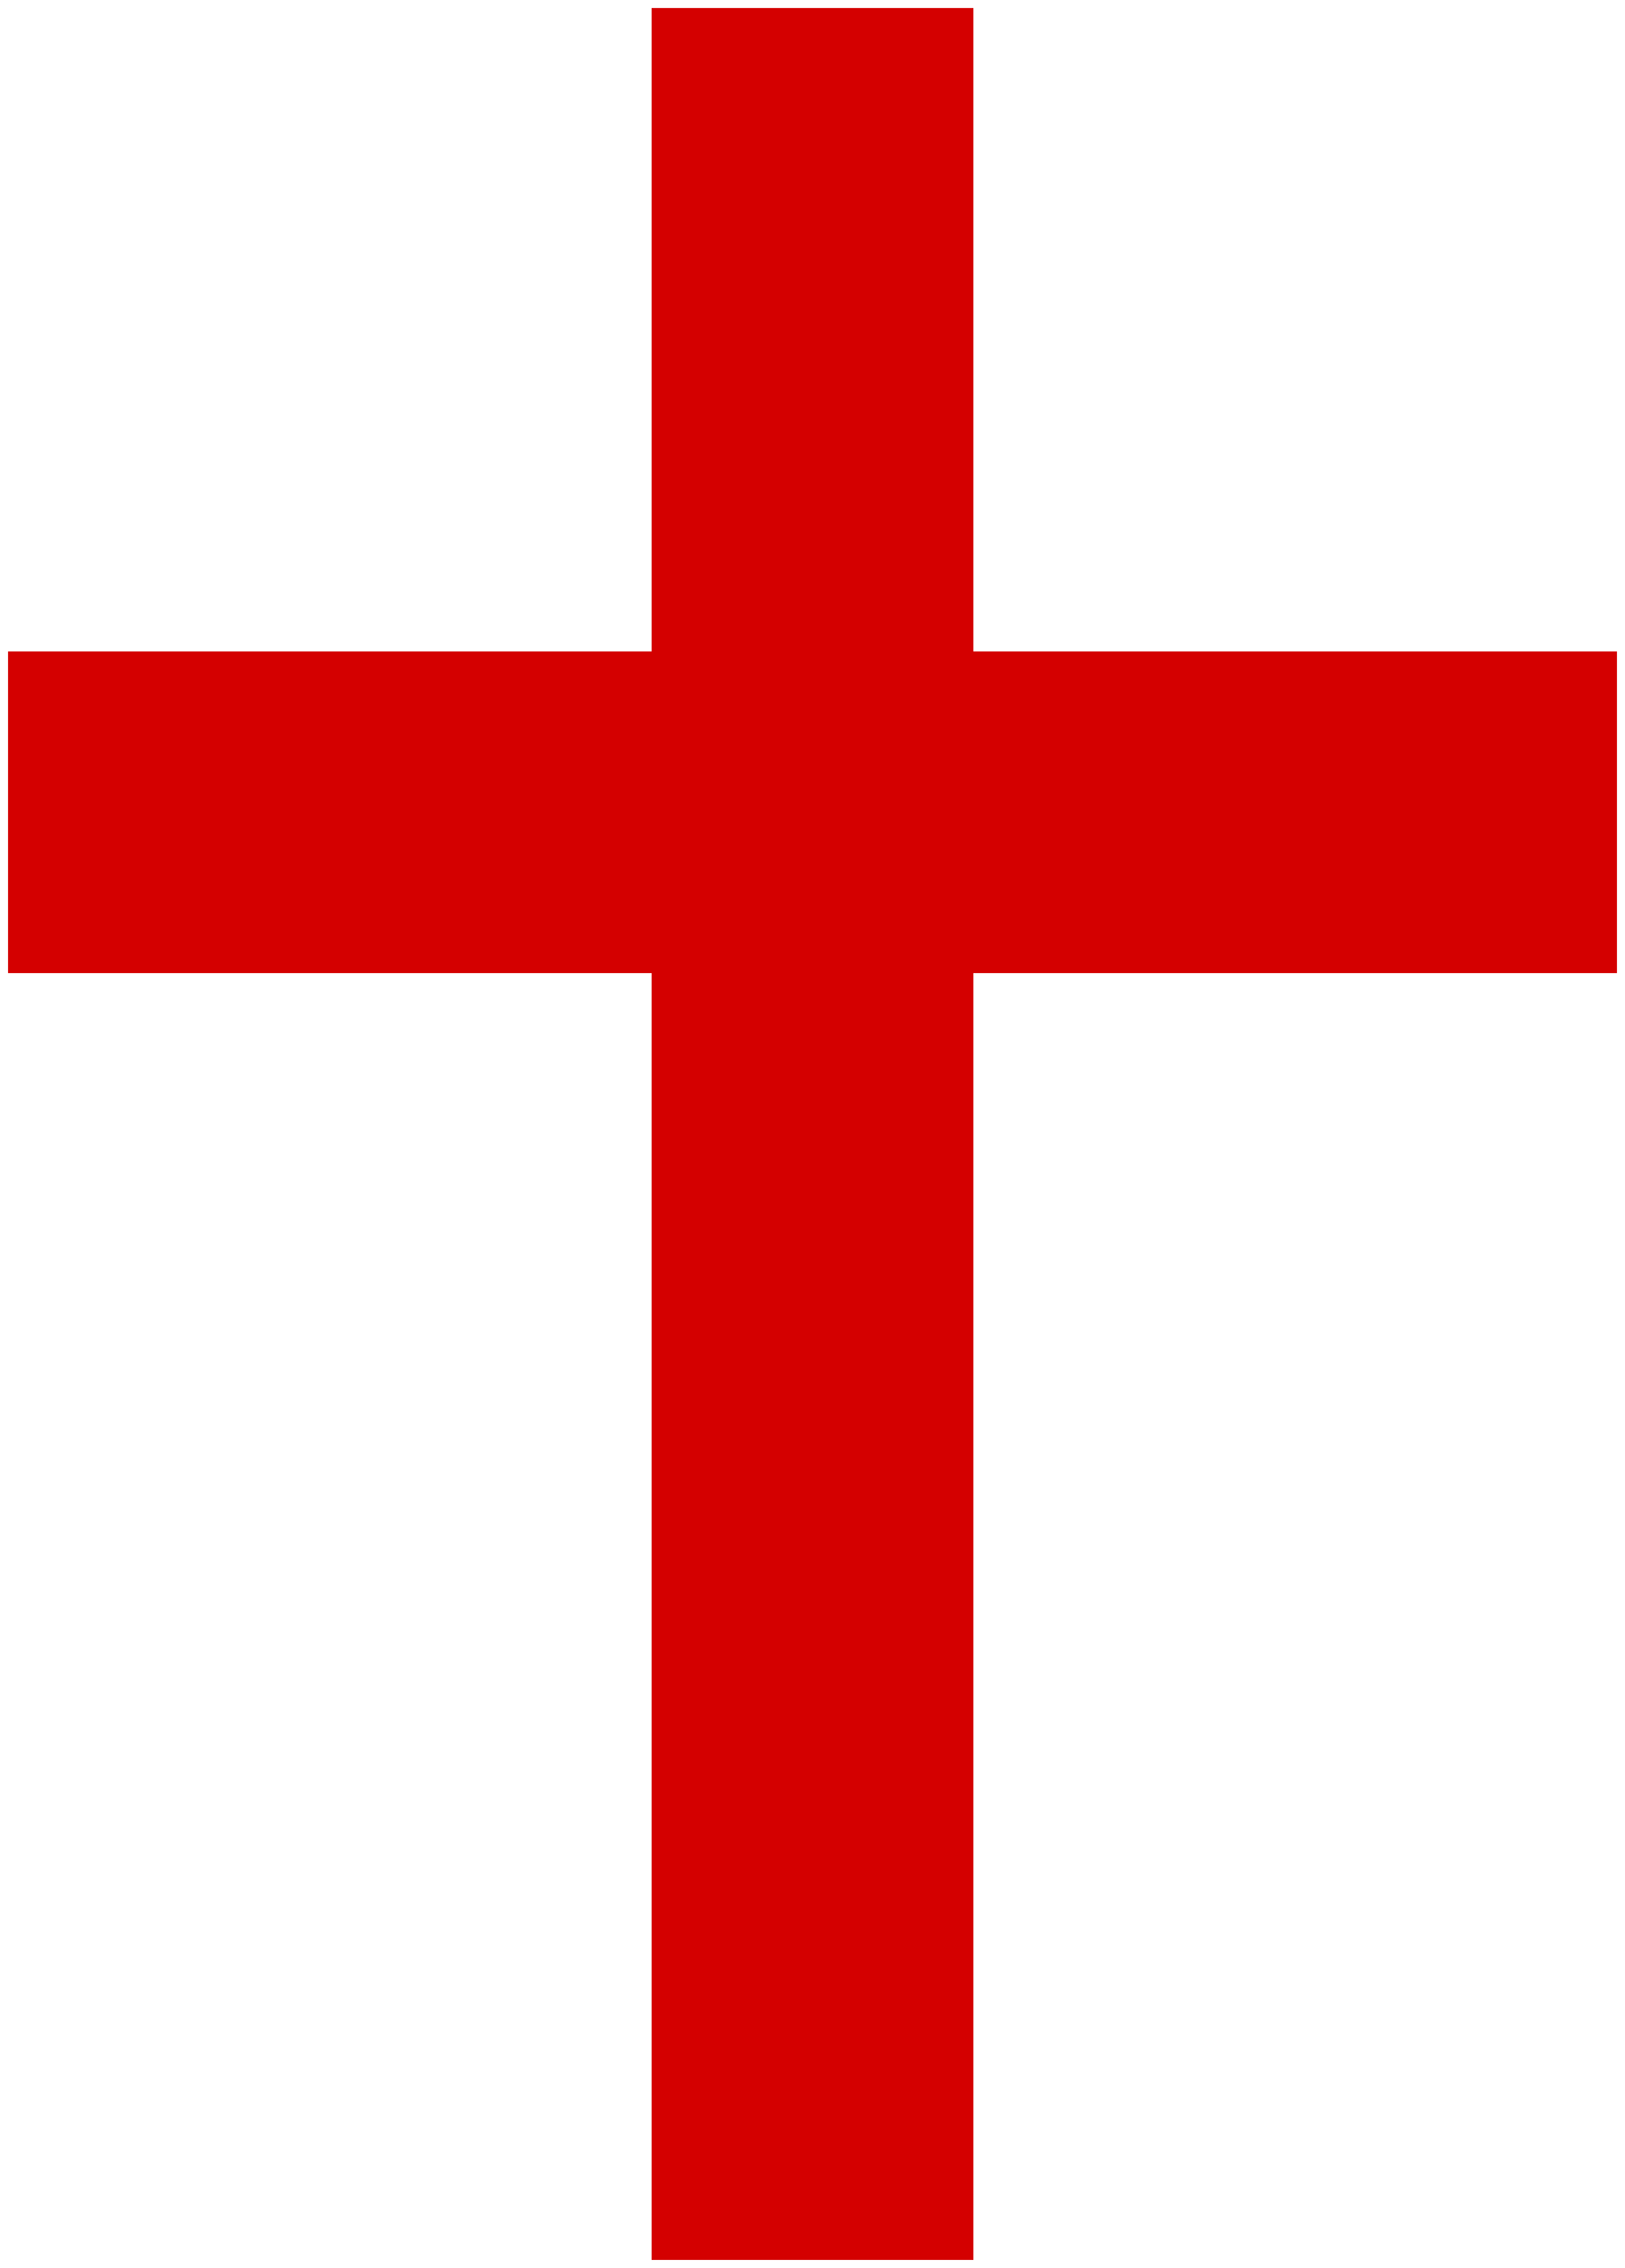 Christianity cross clipart picture library download Christian cross PNG images free download picture library download